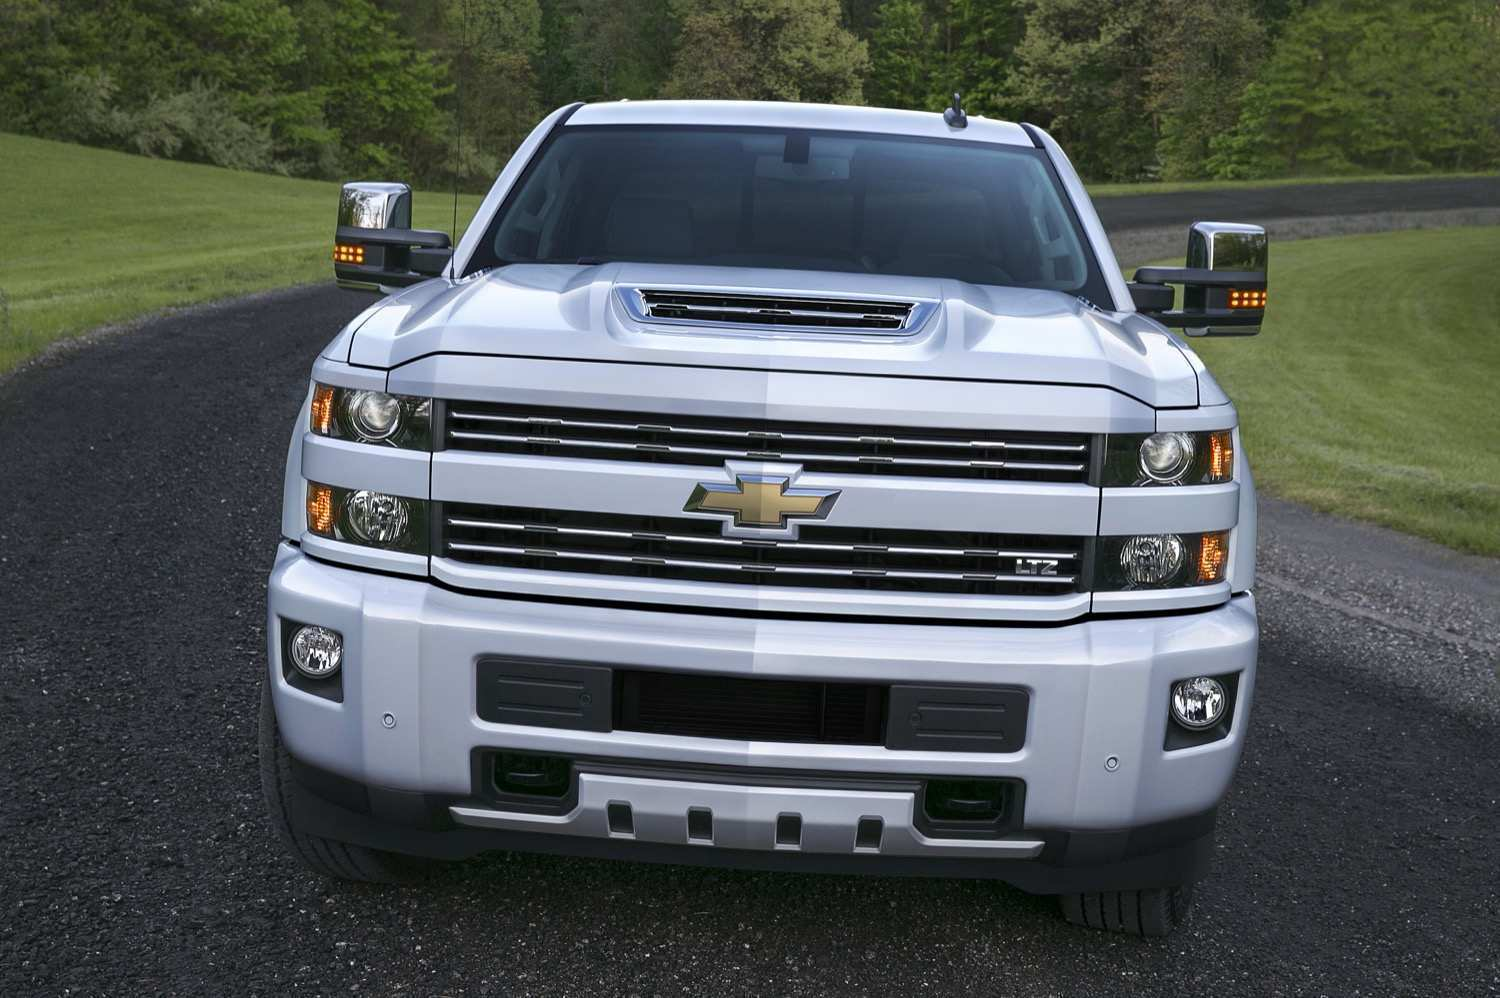 61 All New 2019 Chevrolet Hd 2500 Release Date by 2019 Chevrolet Hd 2500